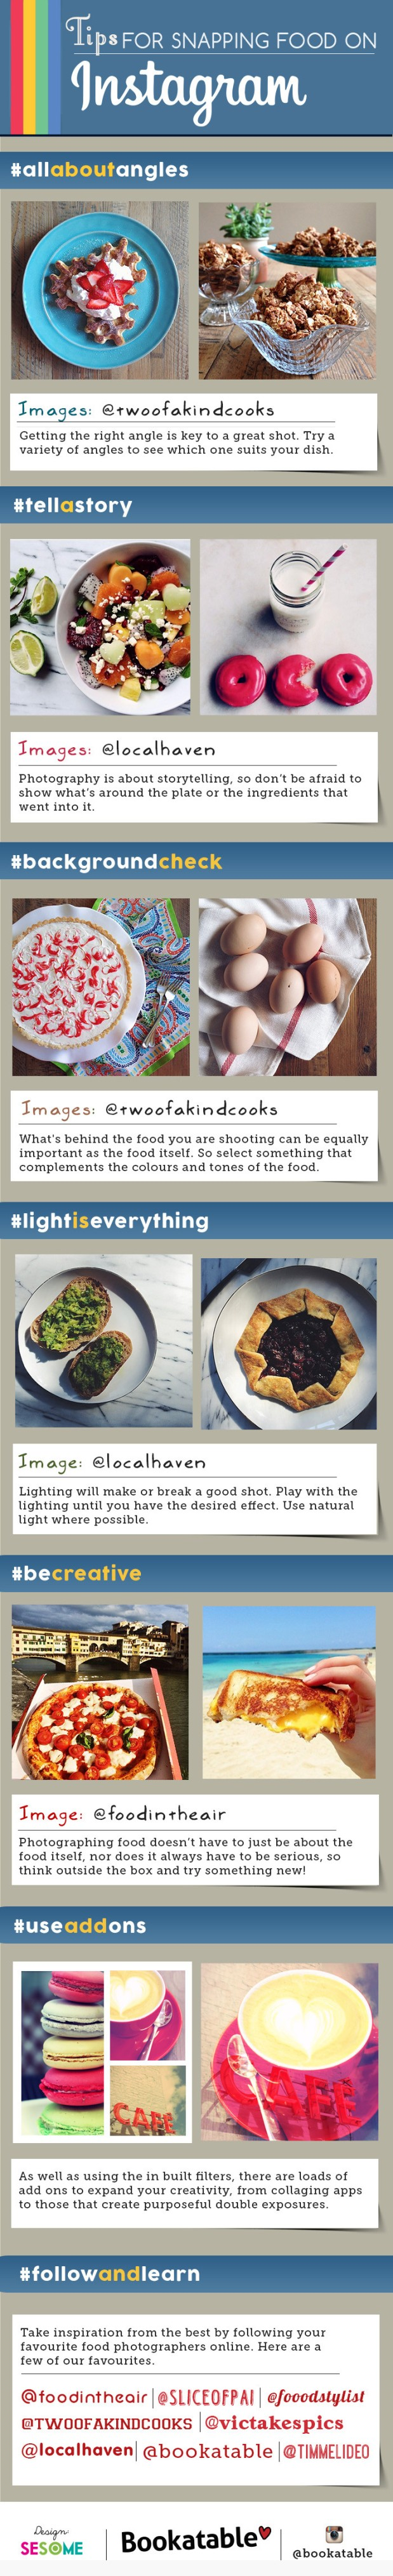 Tips for Snapping Food On Instagram